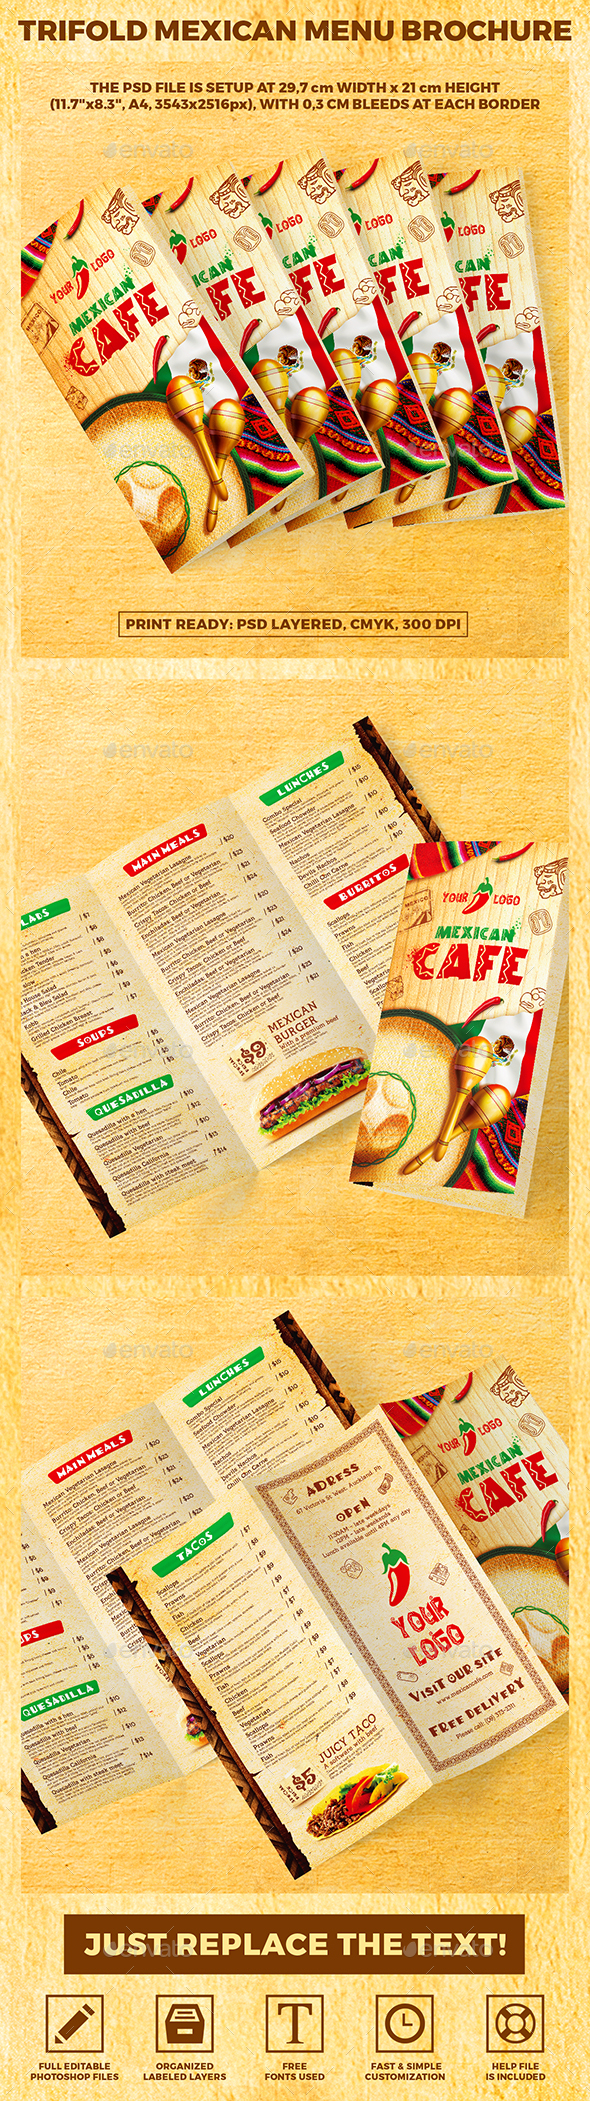 Trifold A4 Mexican Menu Brochure vol.2 - Food Menus Print Templates